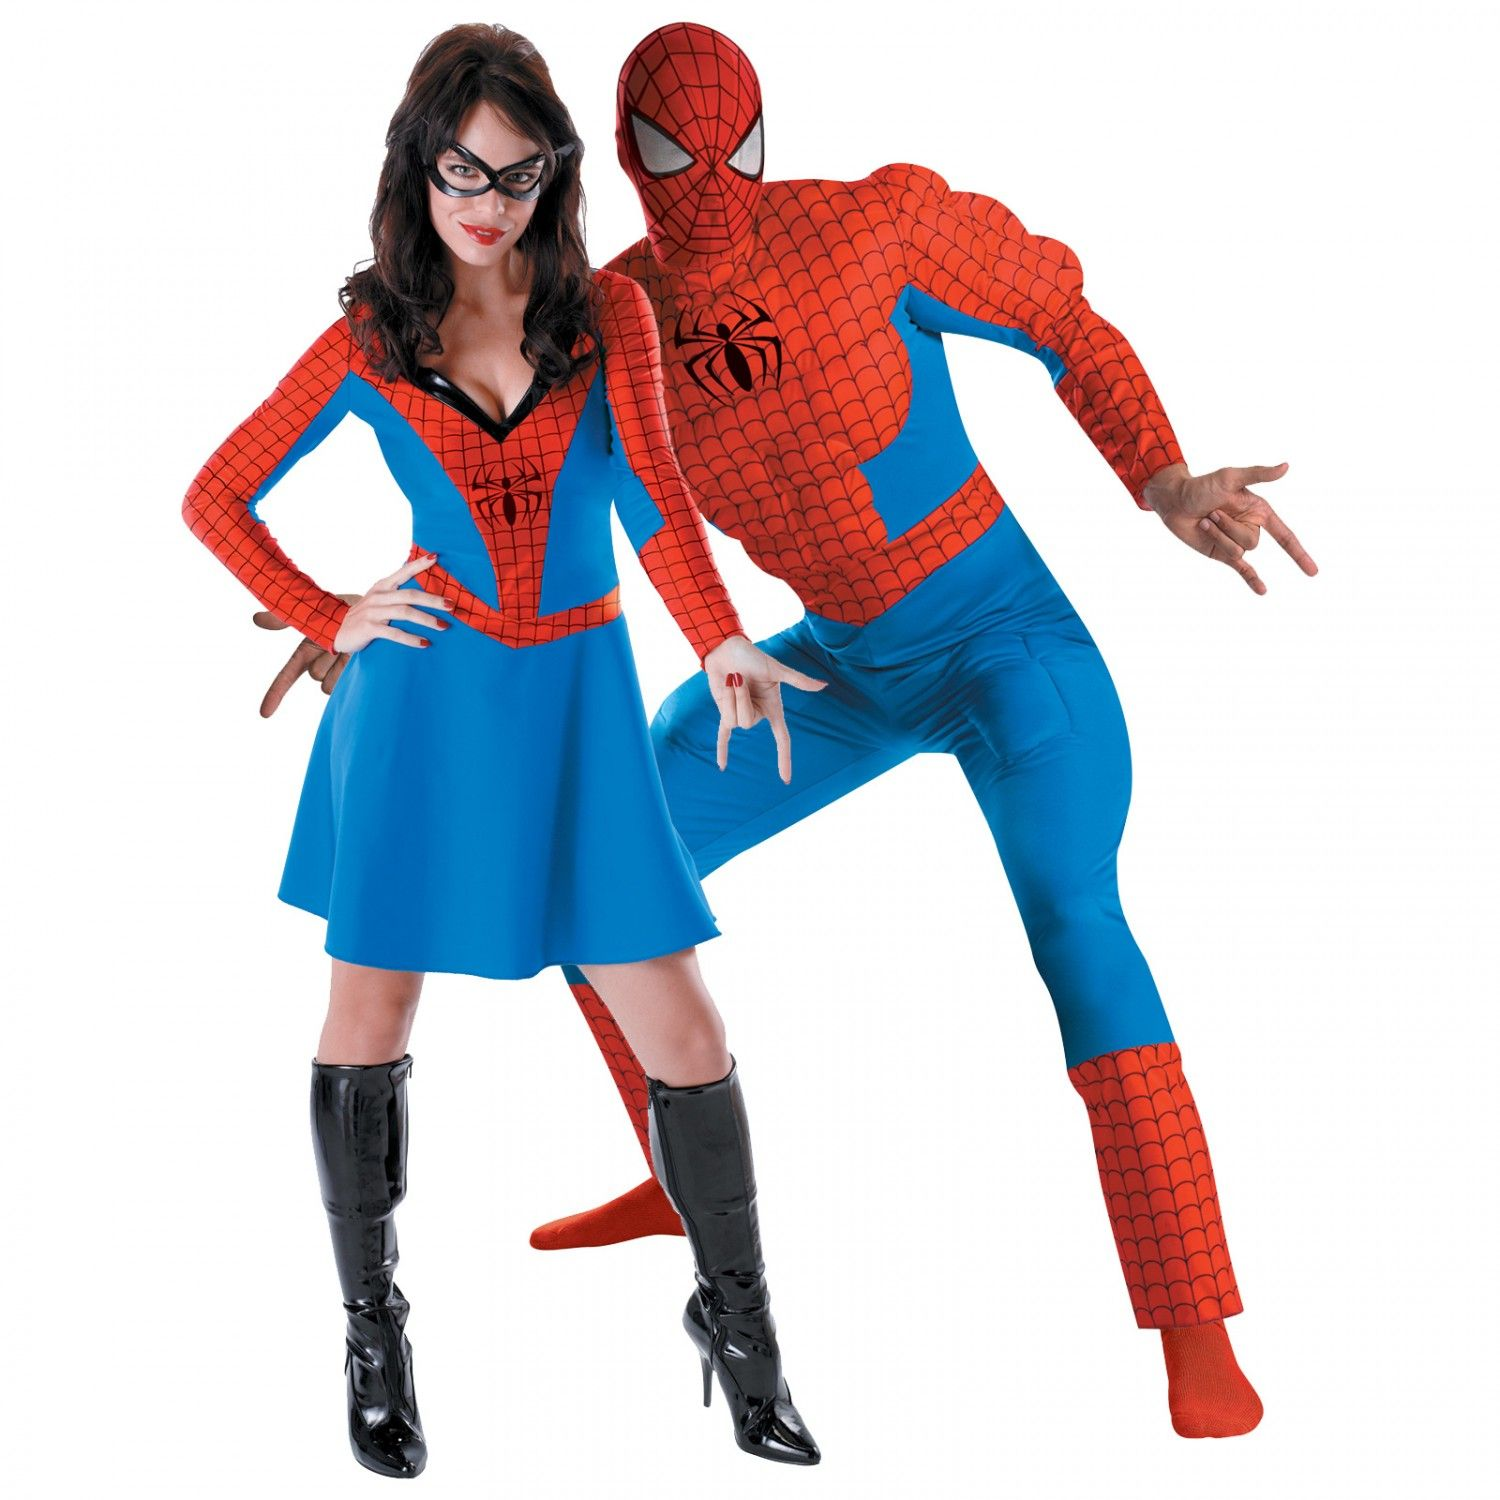 Classic Spider Girl and Deluxe Spiderman Muscle Couples Costume ...